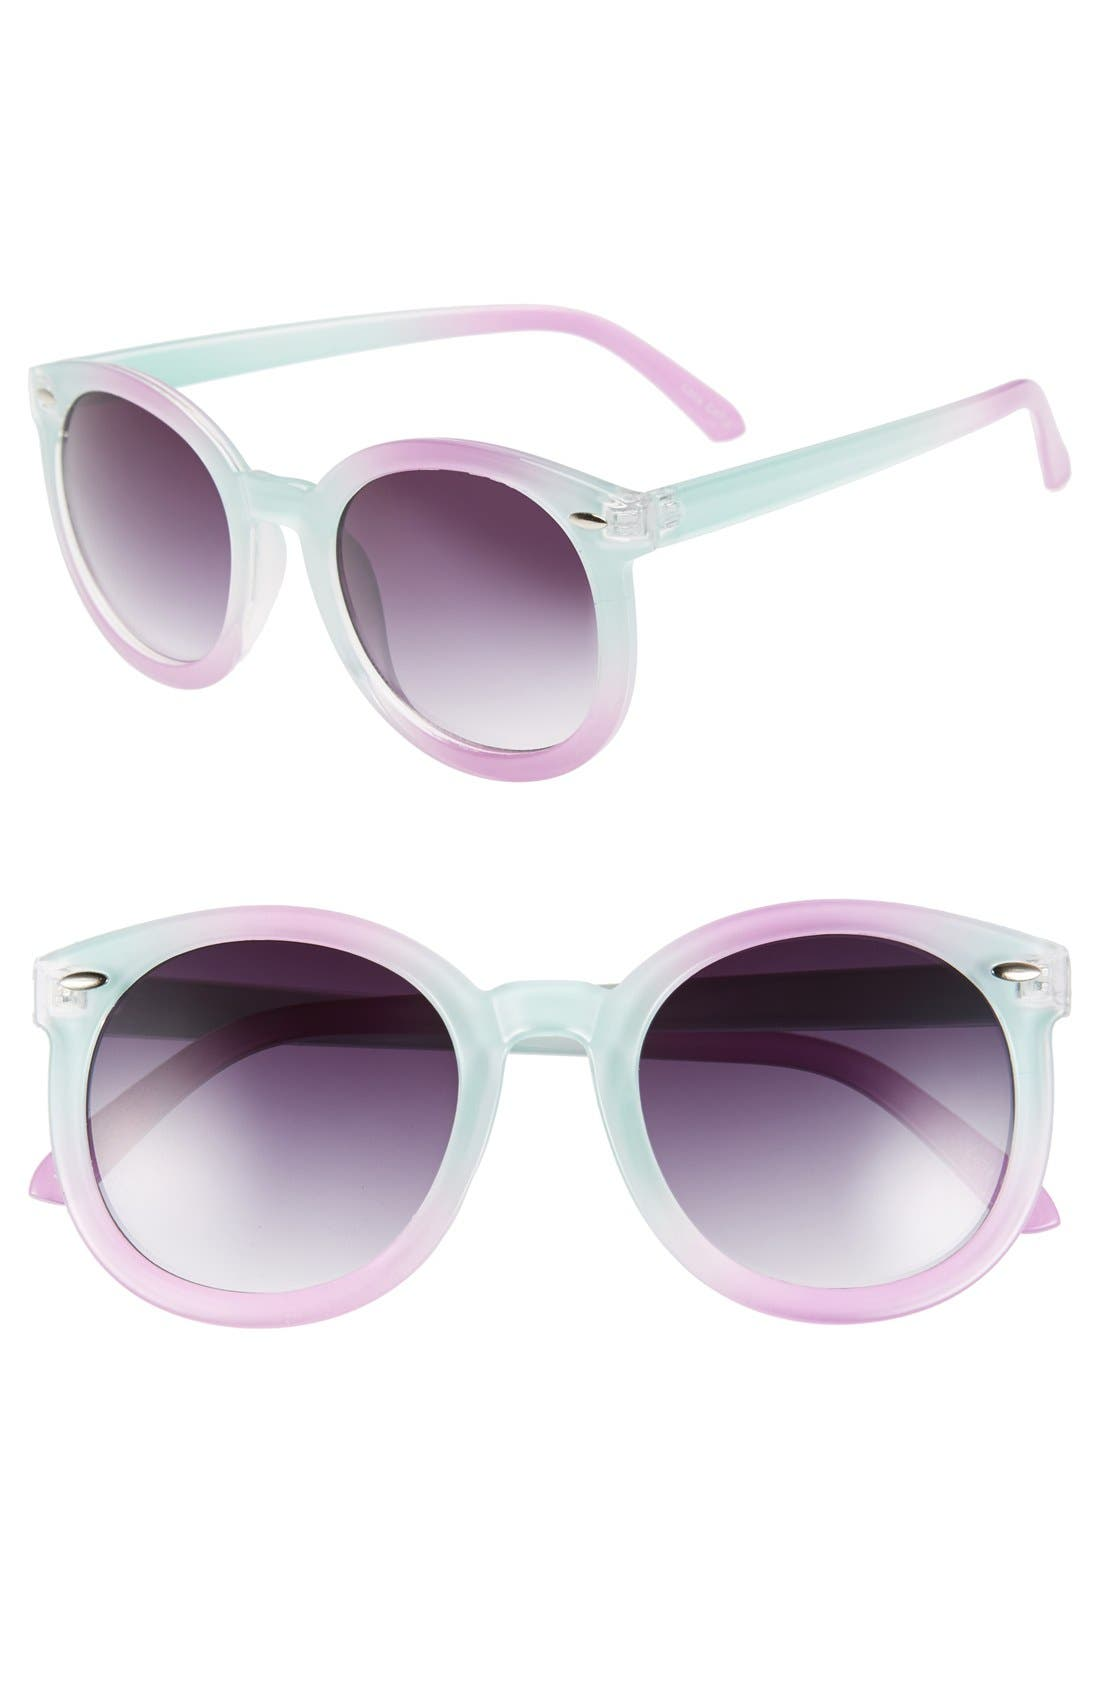 Main Image - Tildon 55mm Pastel Round Sunglasses